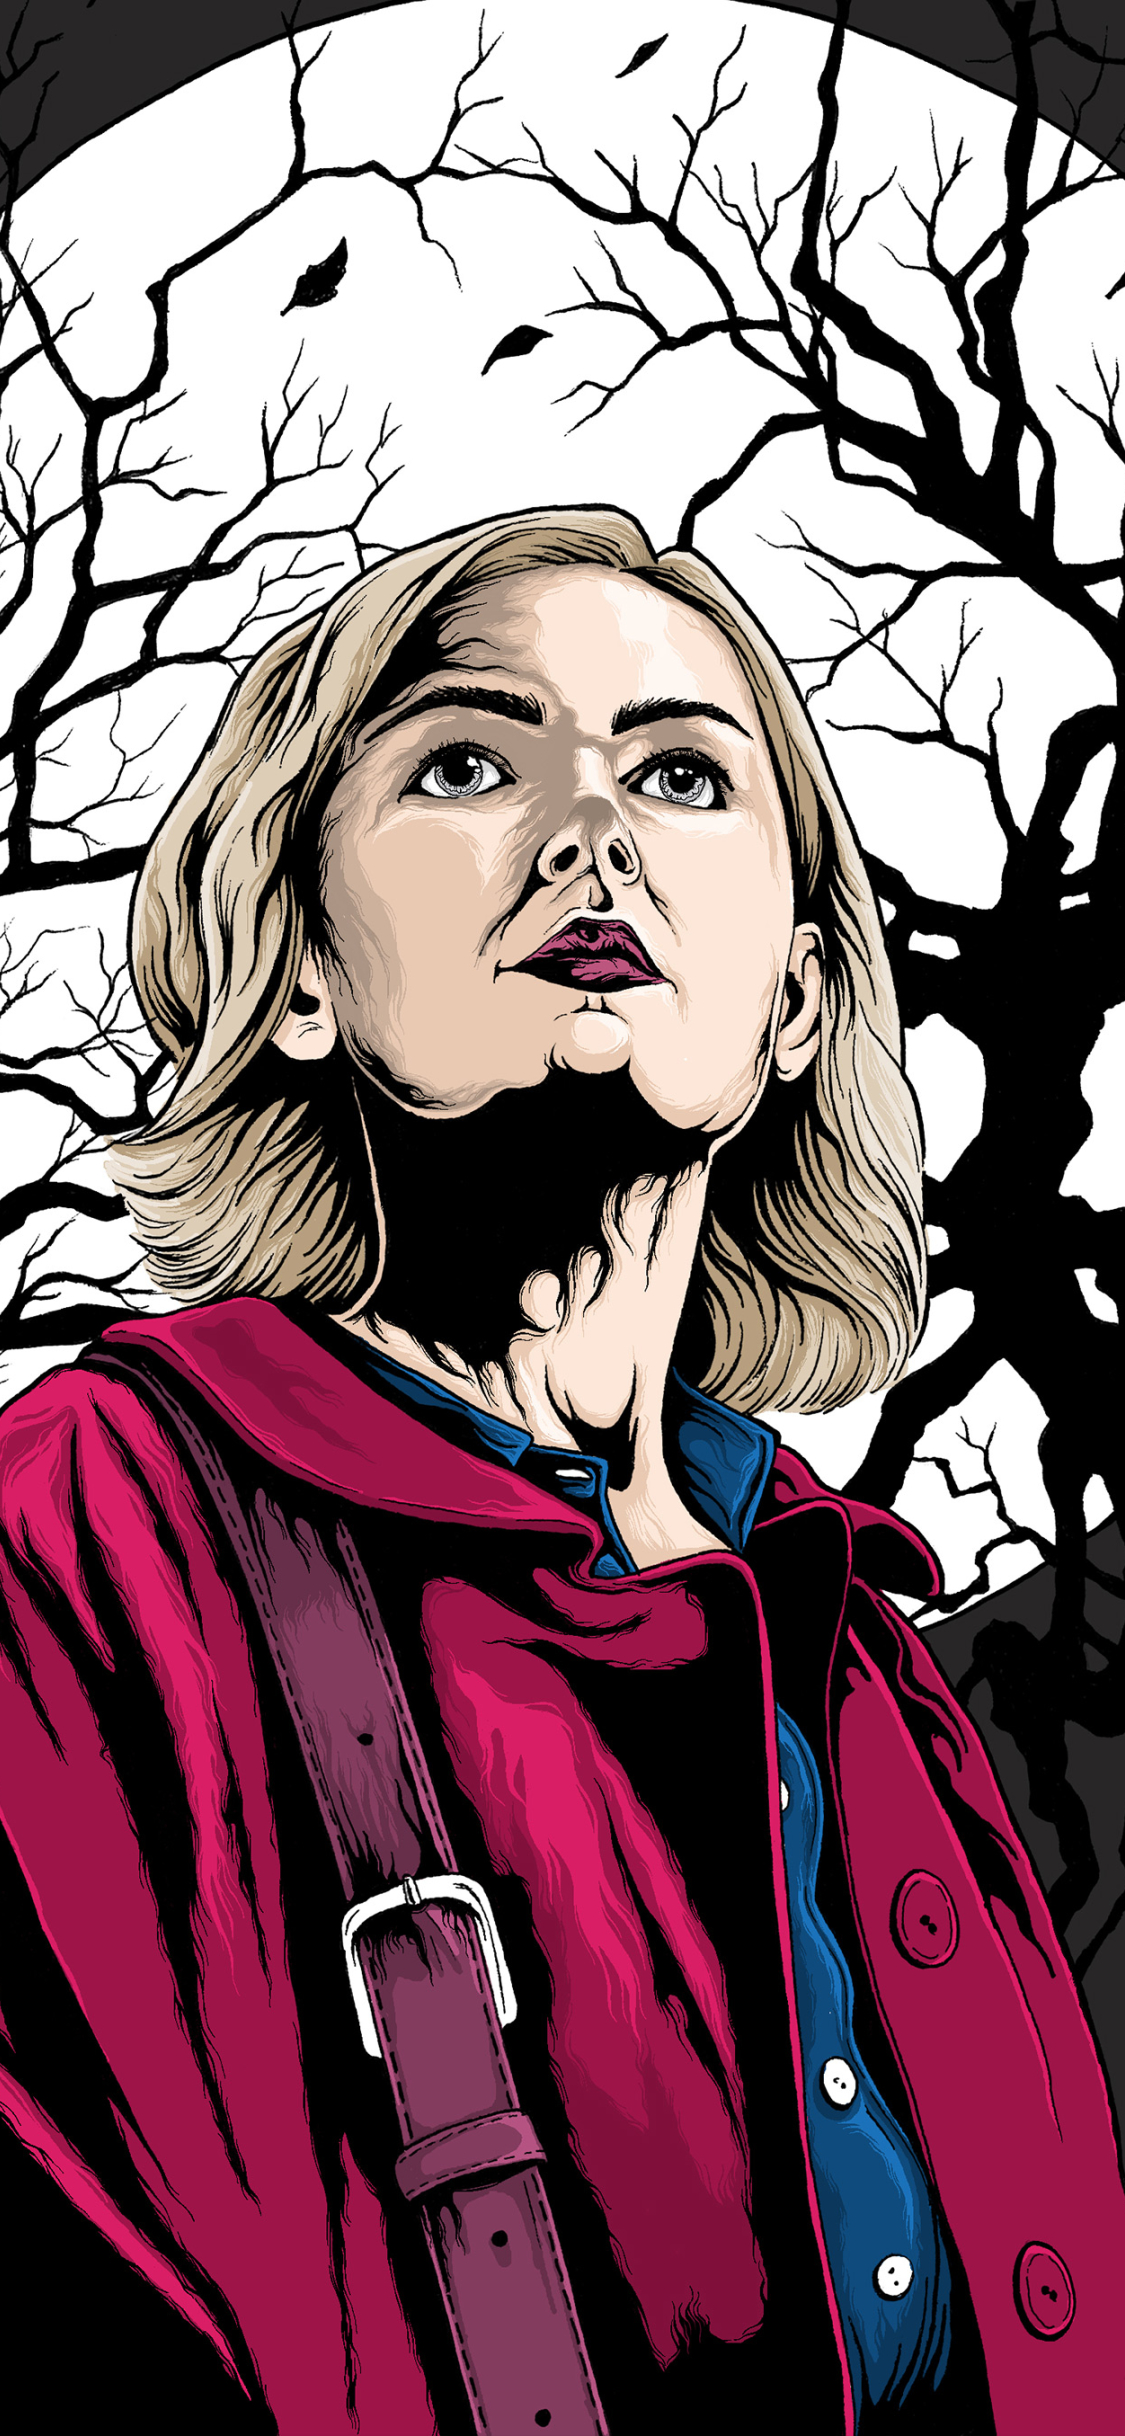 1125x2436 The Chilling Adventures Of Sabrina 2018 Artwork 4k